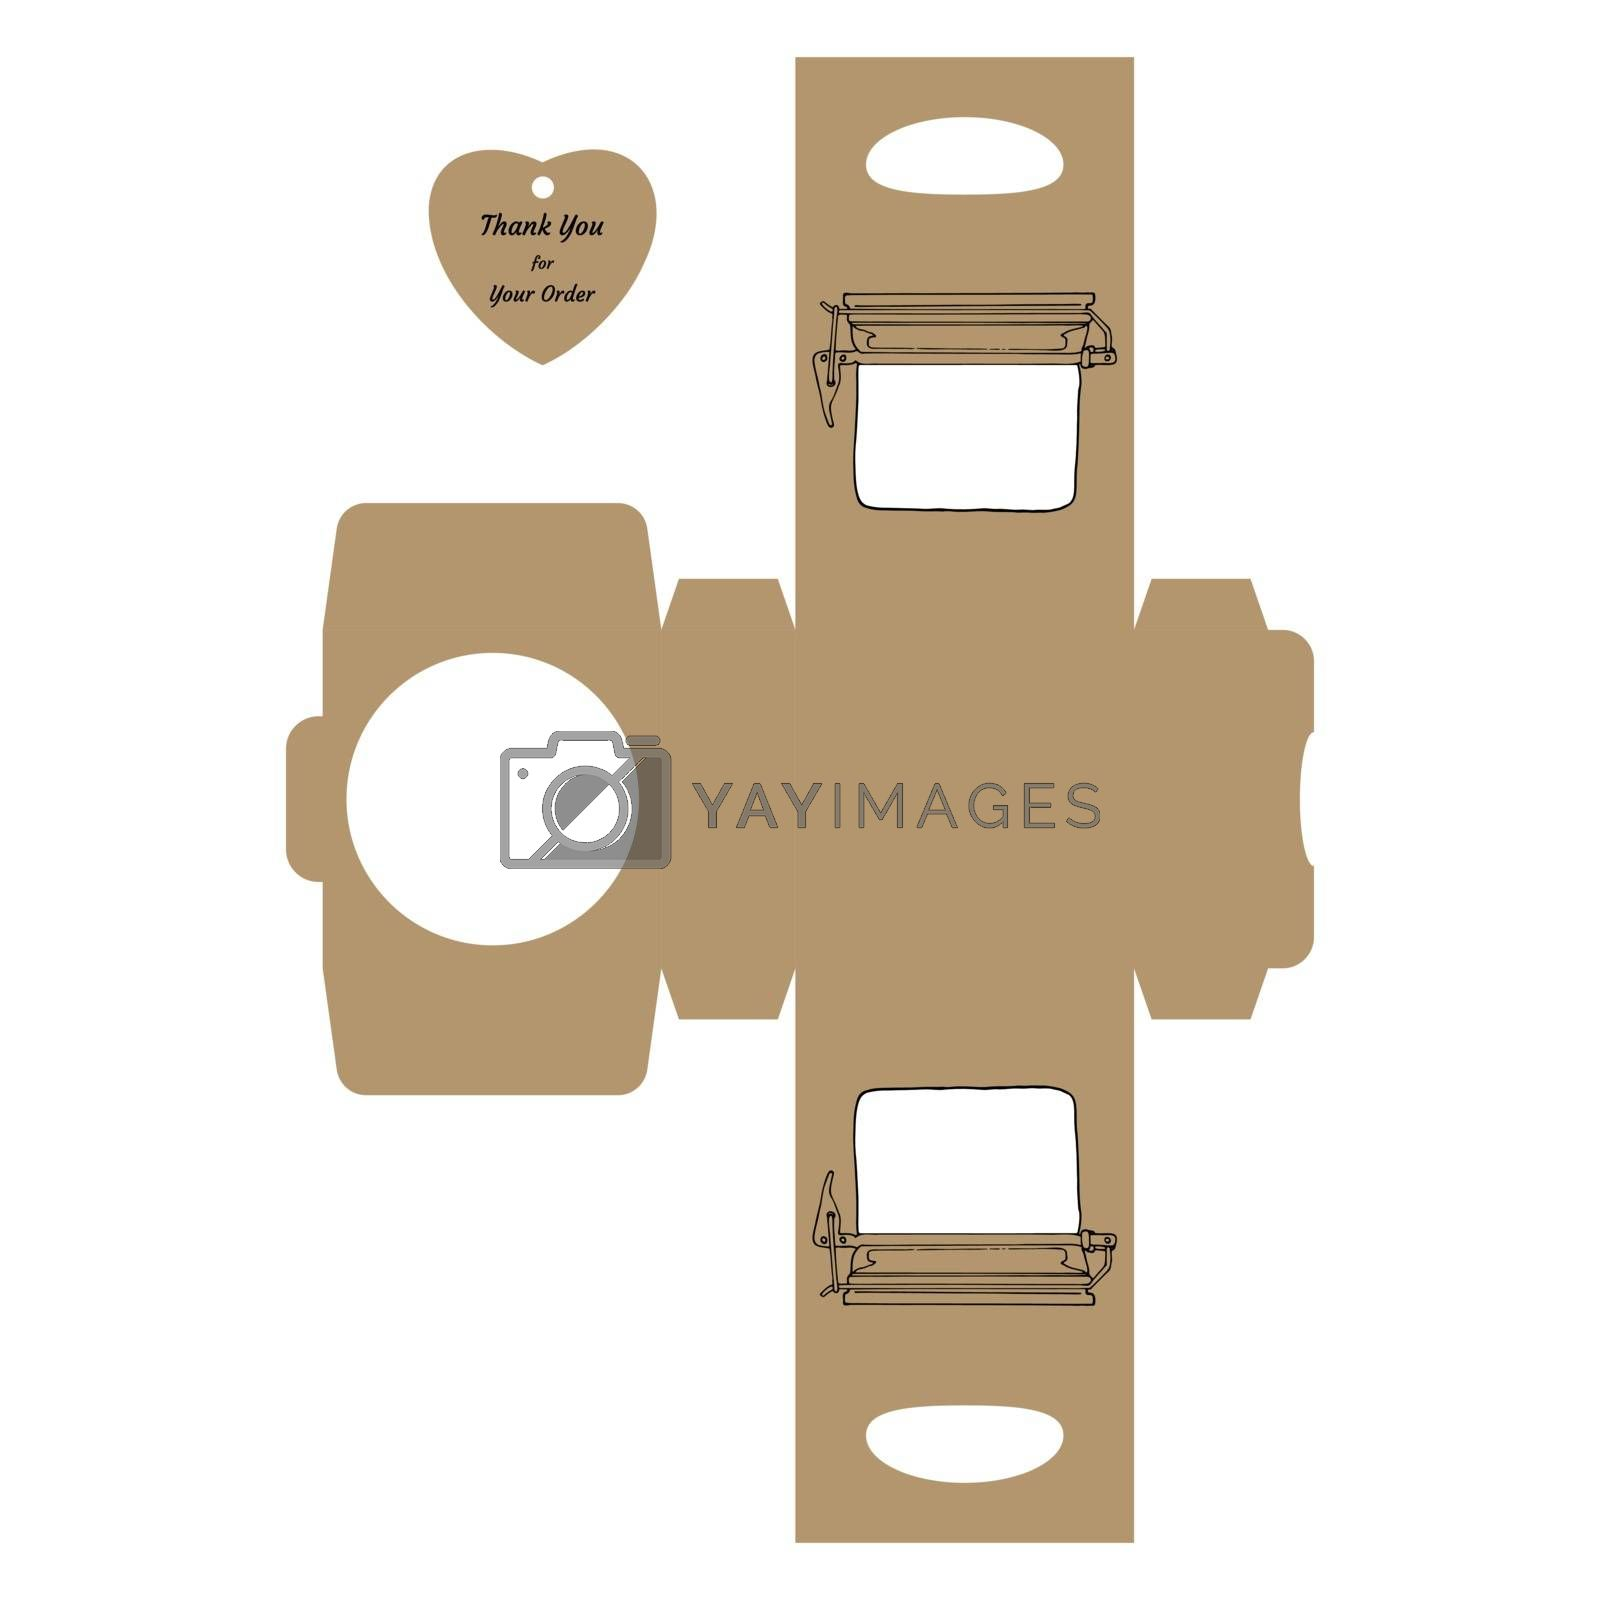 """Simple Packaging Box Die Cut Cube Template with jar and tag with text """"Thank You for Your Order"""" on white background - Vector Draw Graphic Design."""